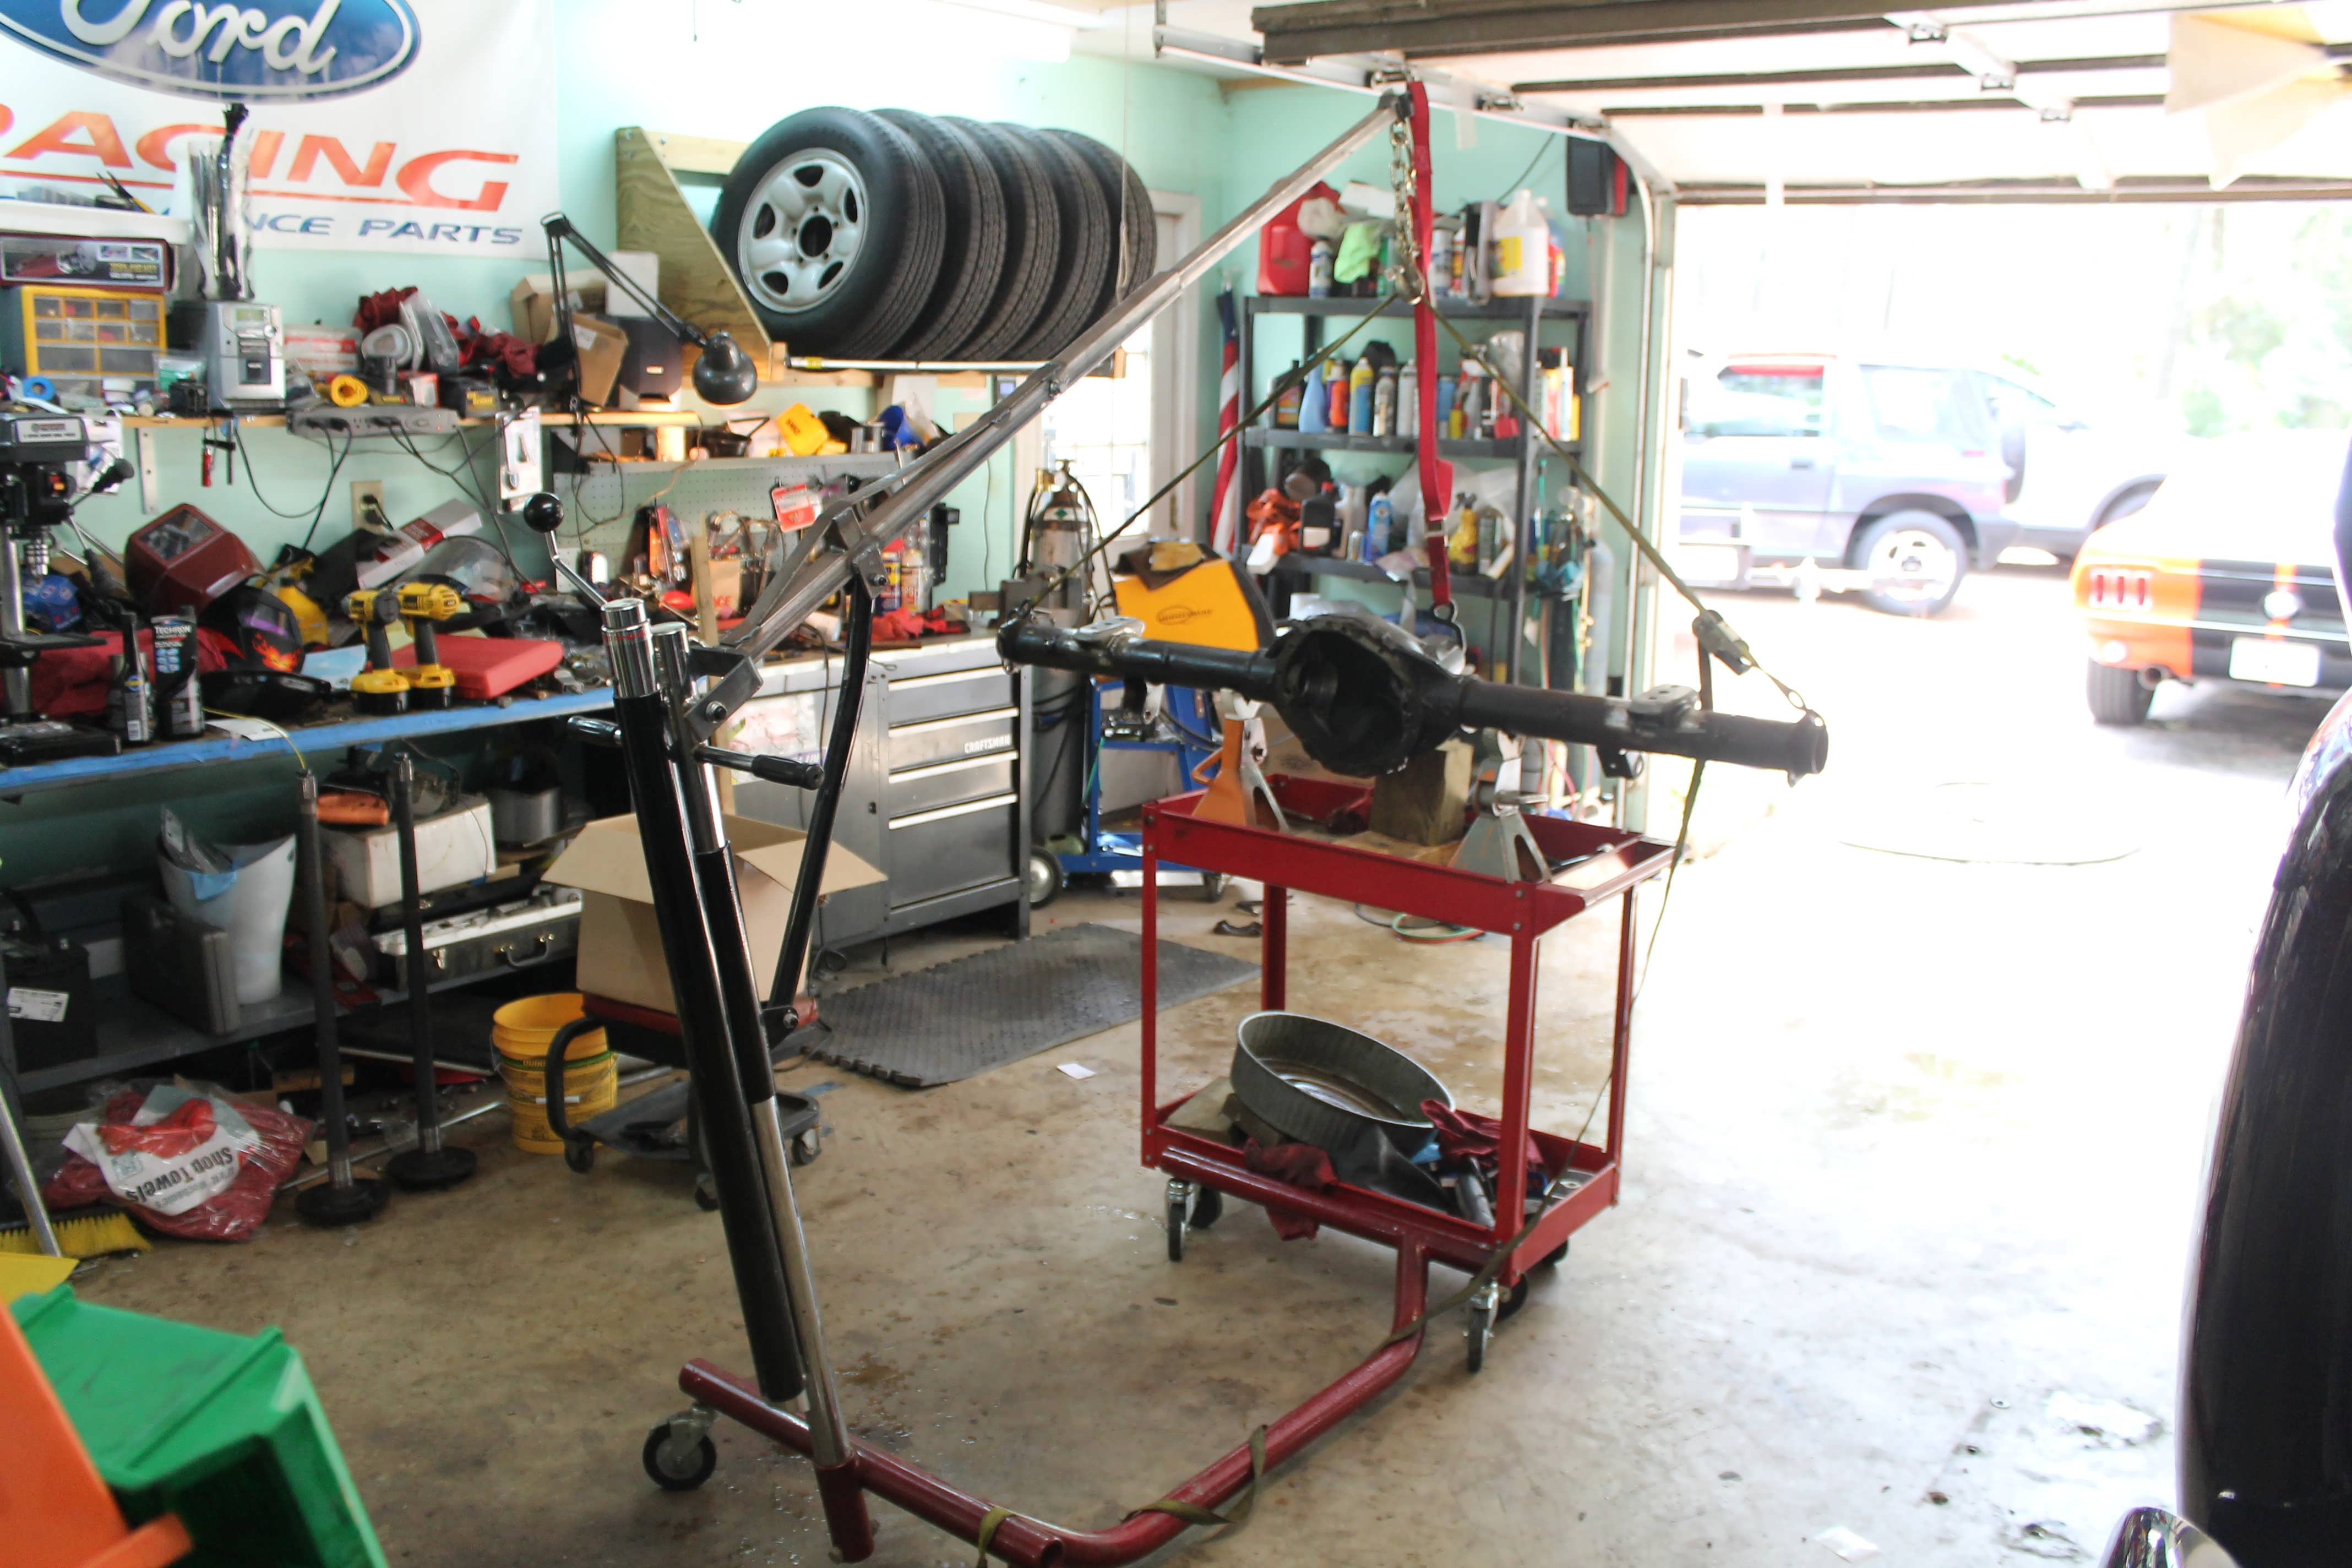 59 Chevy apache rear end | Classic Cars and Tools